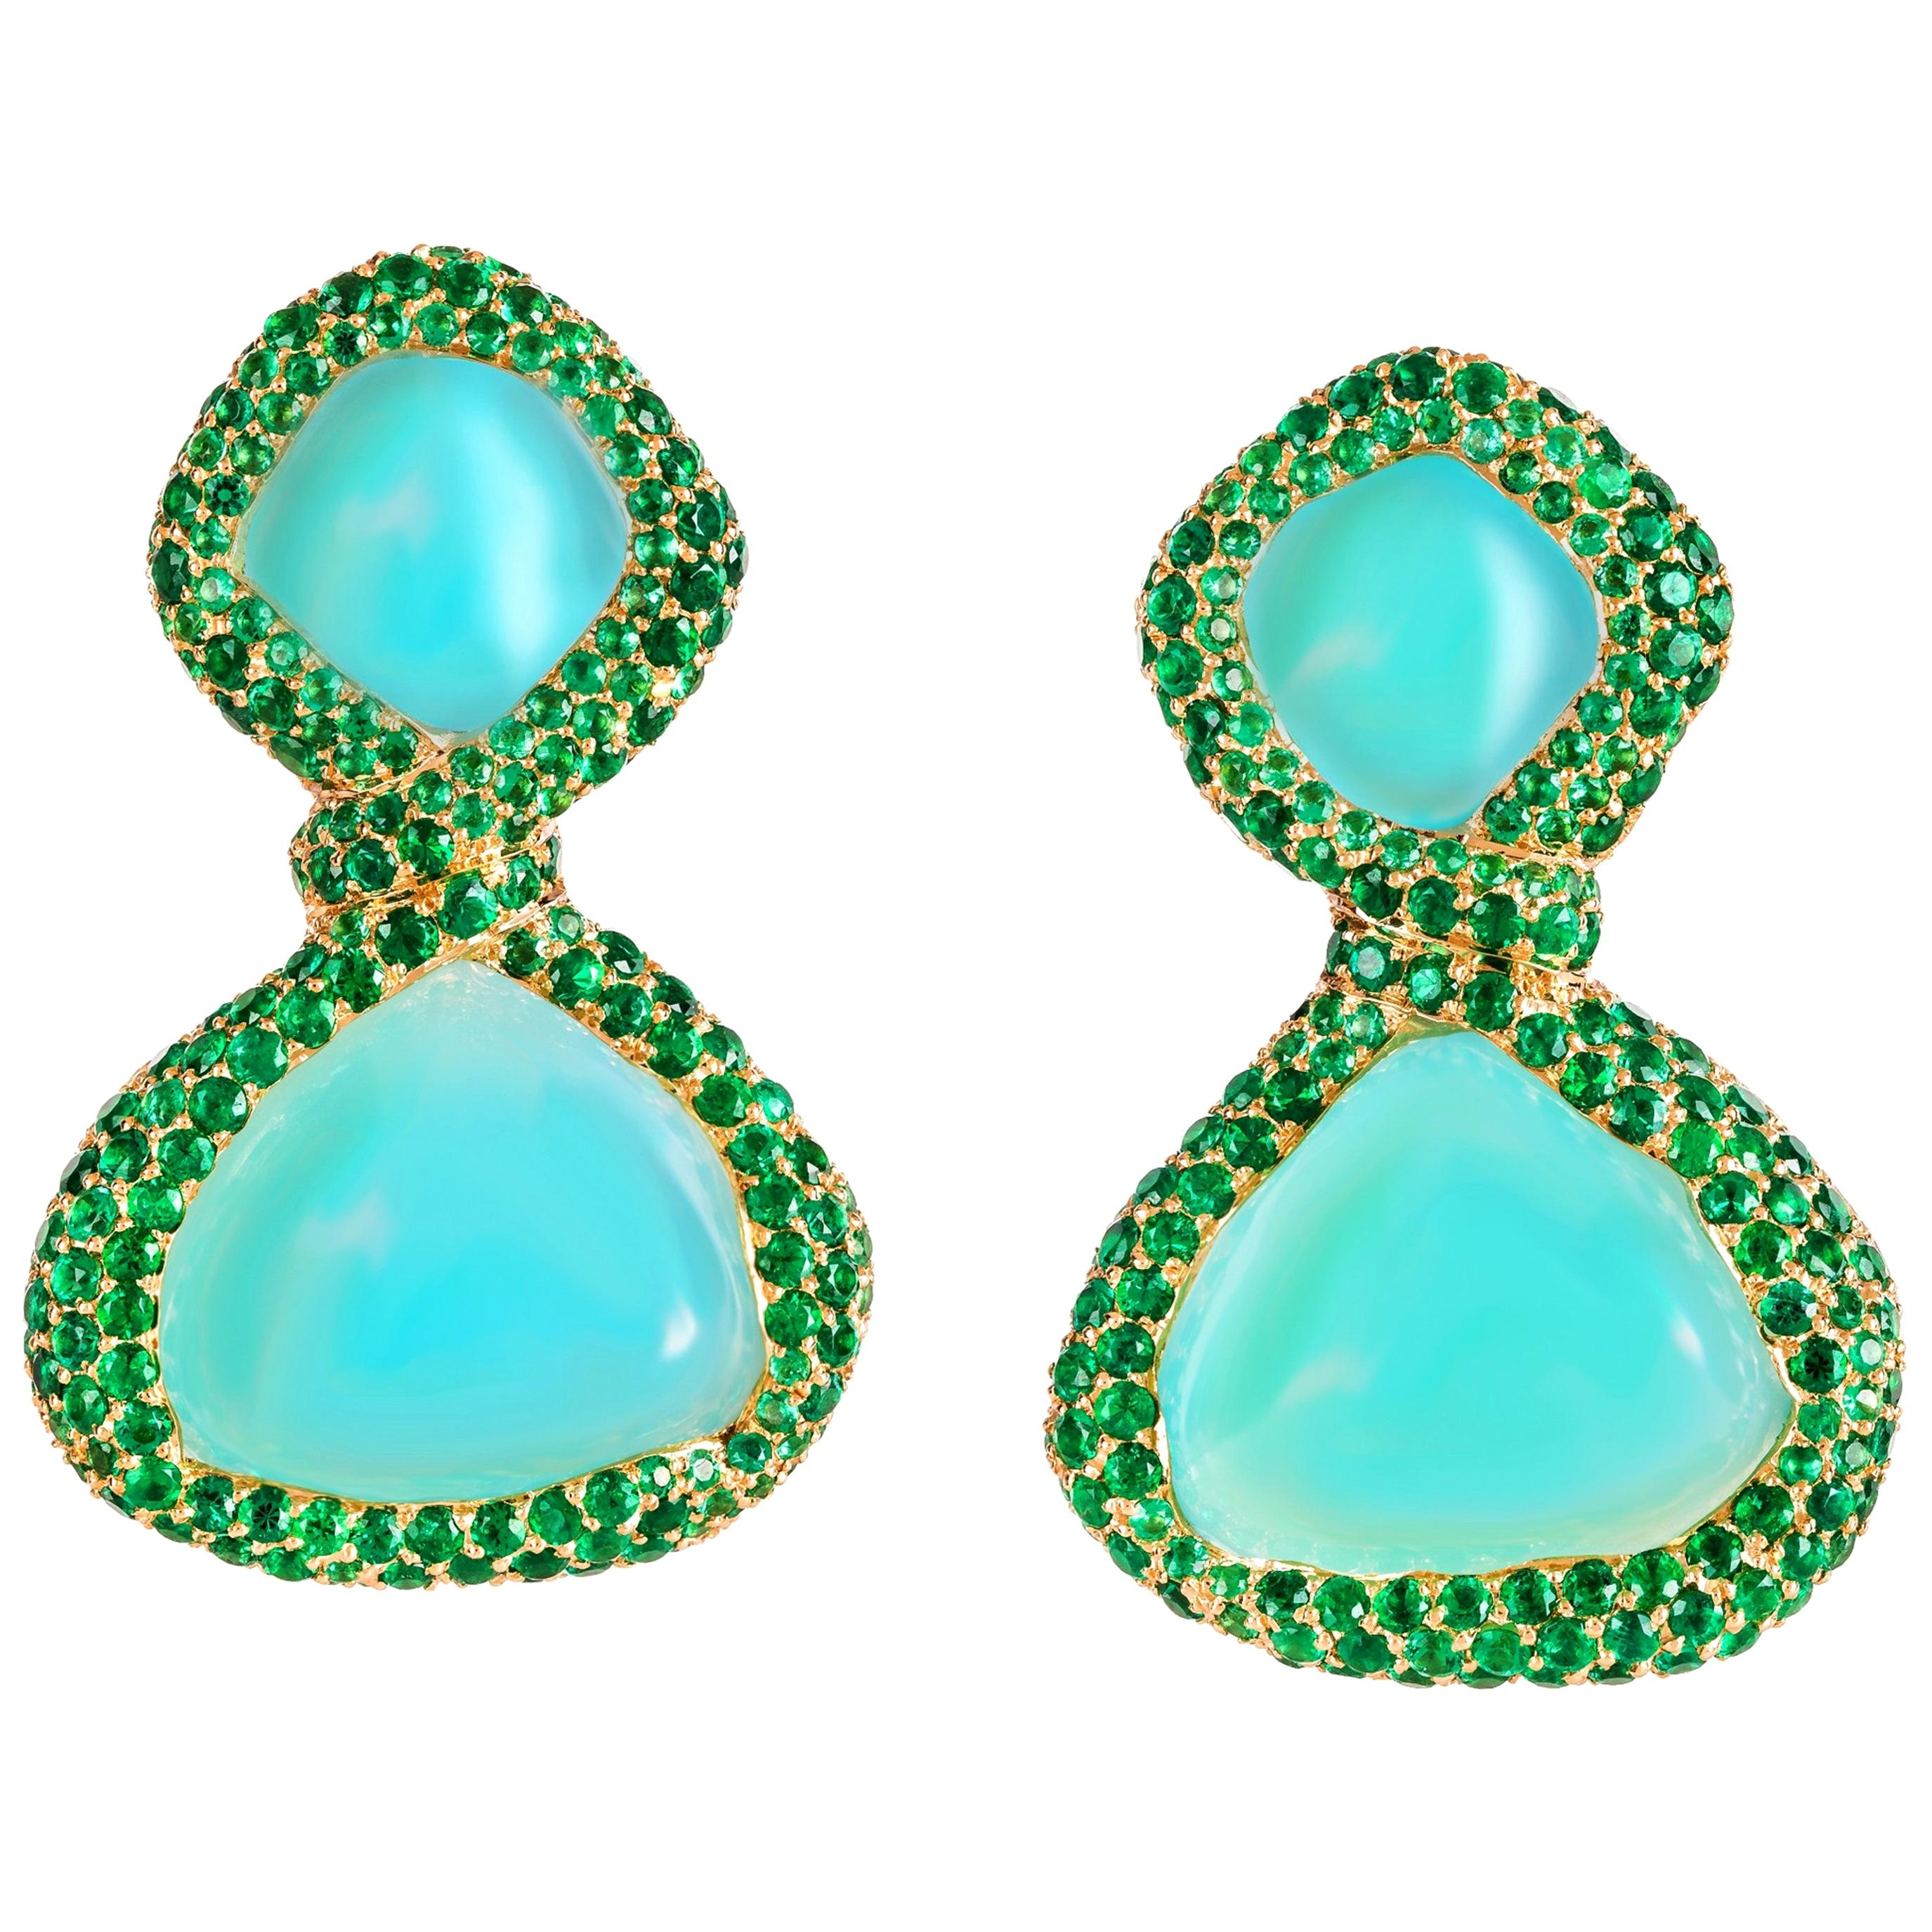 Rosior Chalcedony and Emerald one of a kind Drop Earrings